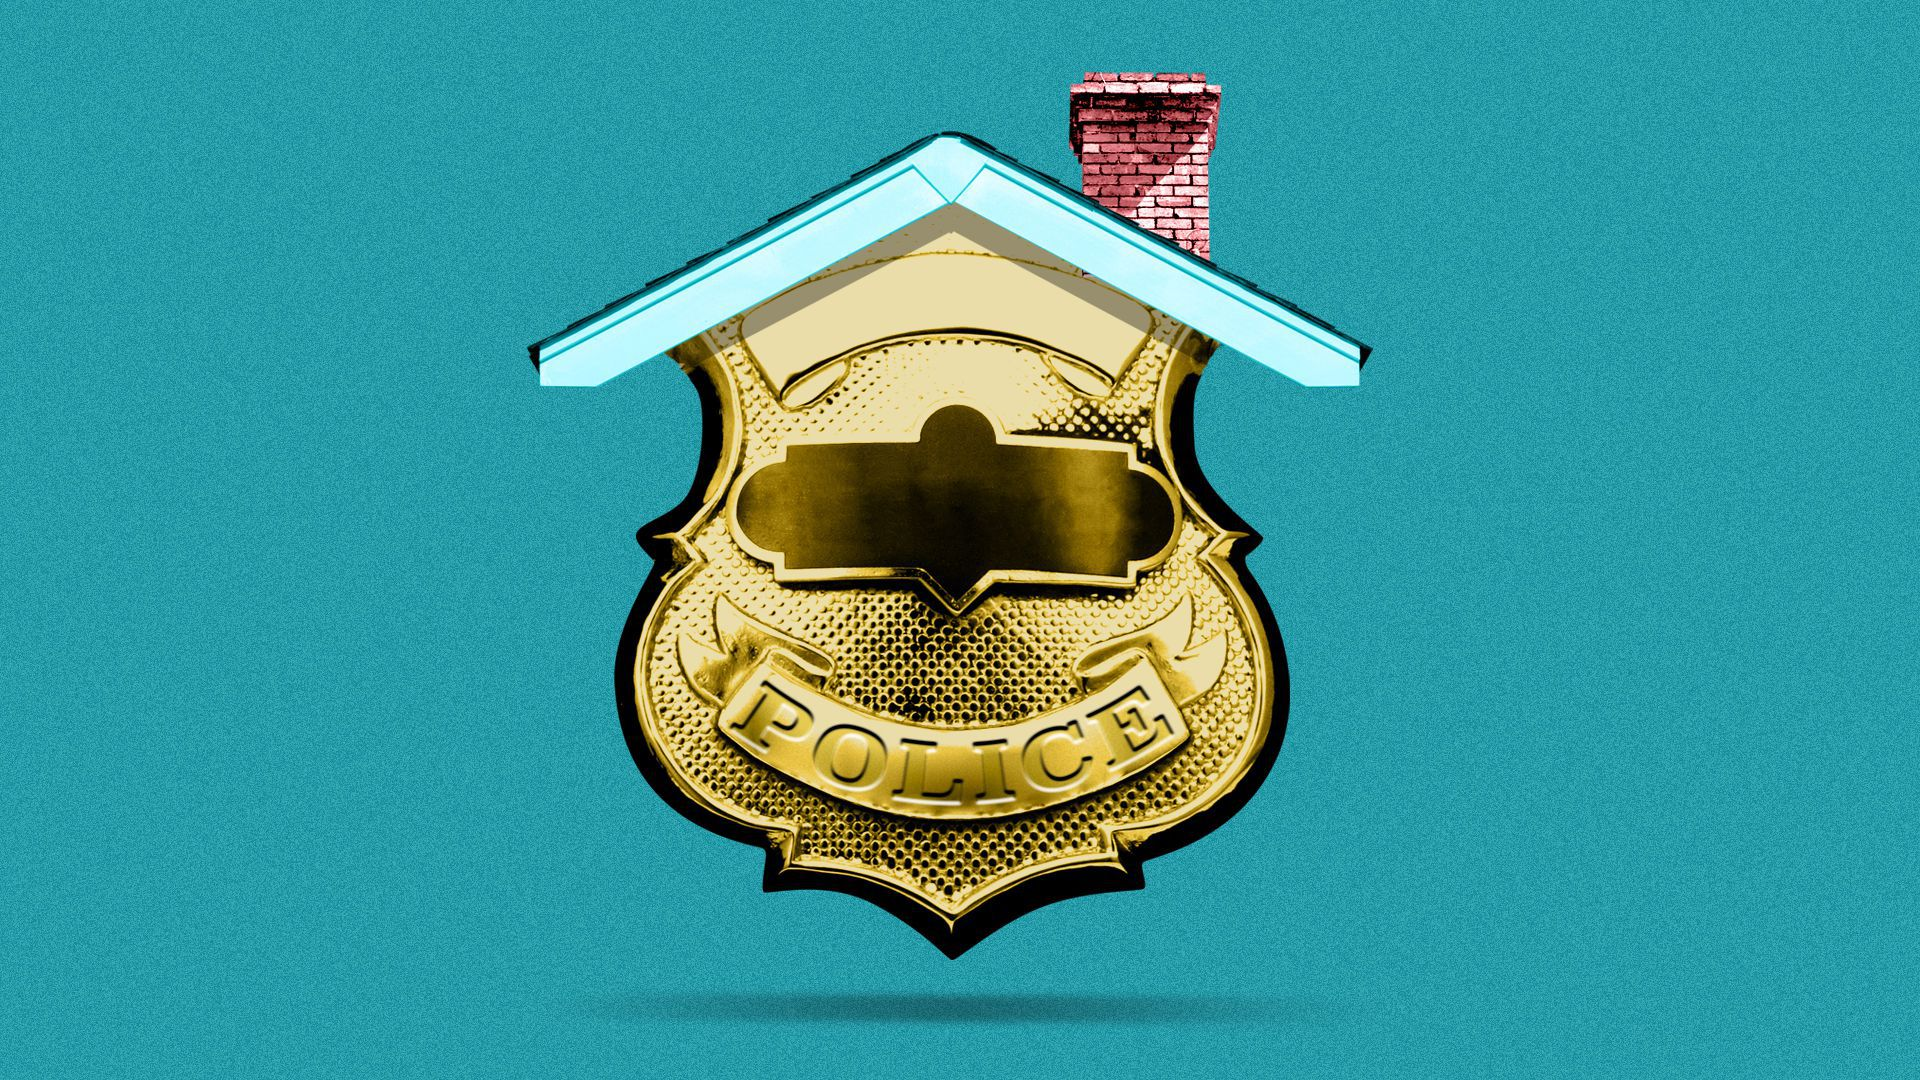 Illustration of a police badge with a roof and chimney on top of it.